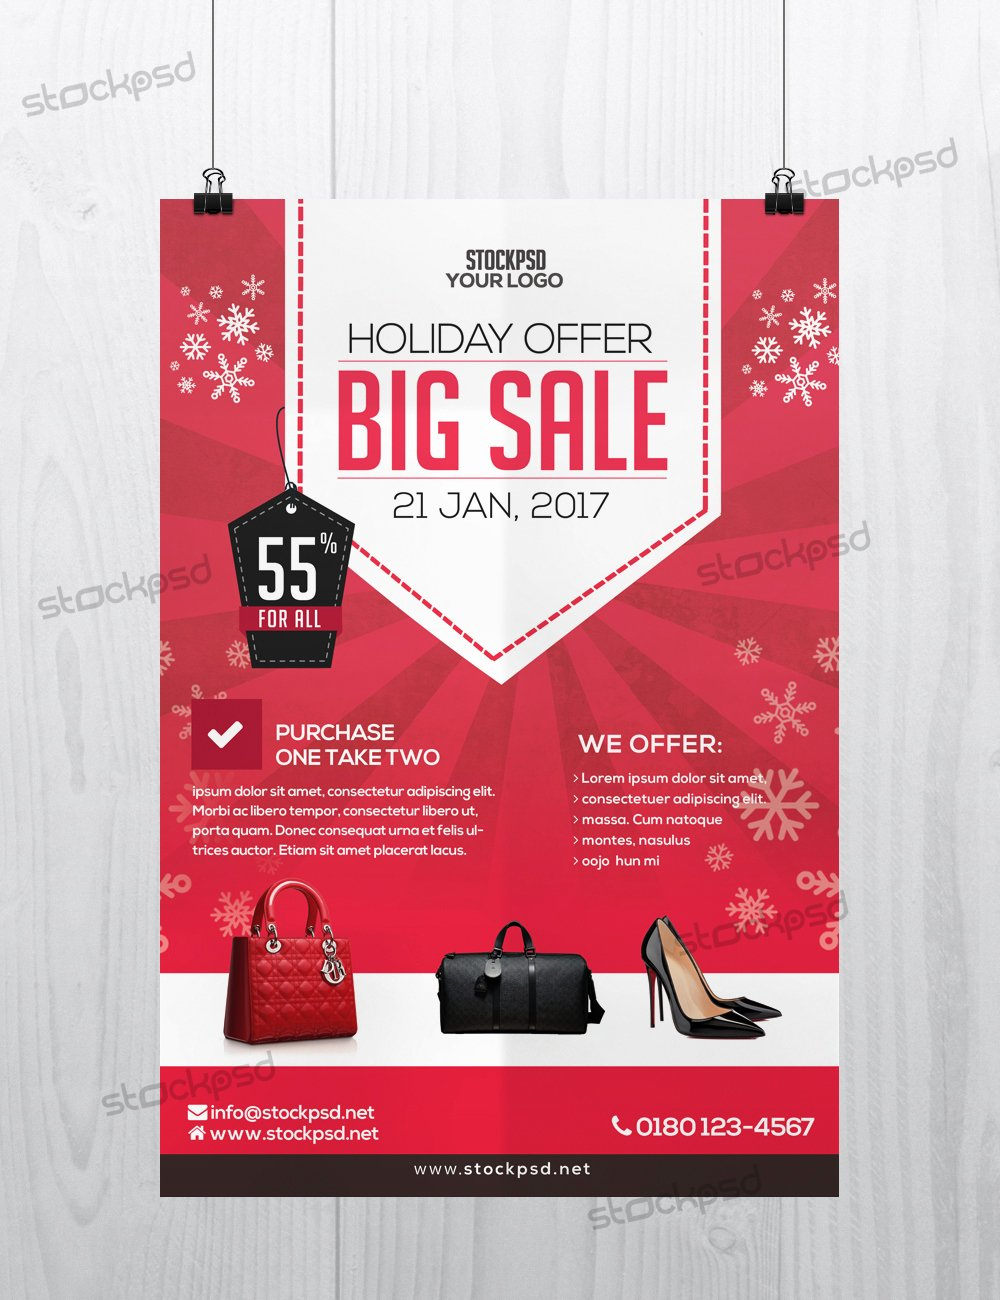 Get Free Holiday 2017 Big Sale Shop Flyer Template